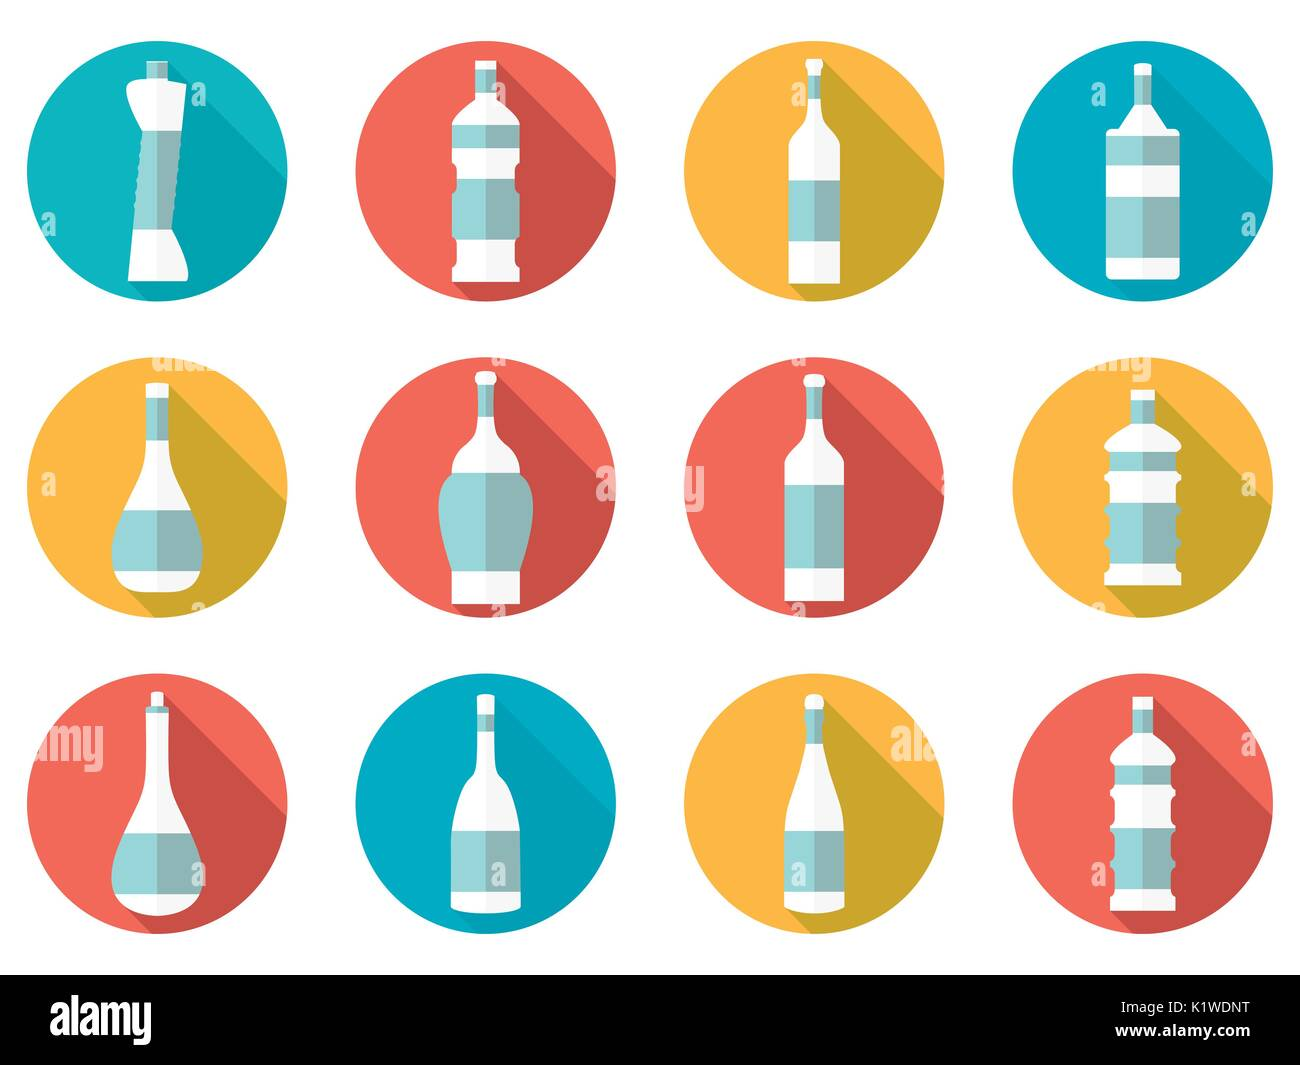 Bottle. Bottle of water. Flat icon with long shadow on white background. Vector illustration. - Stock Vector